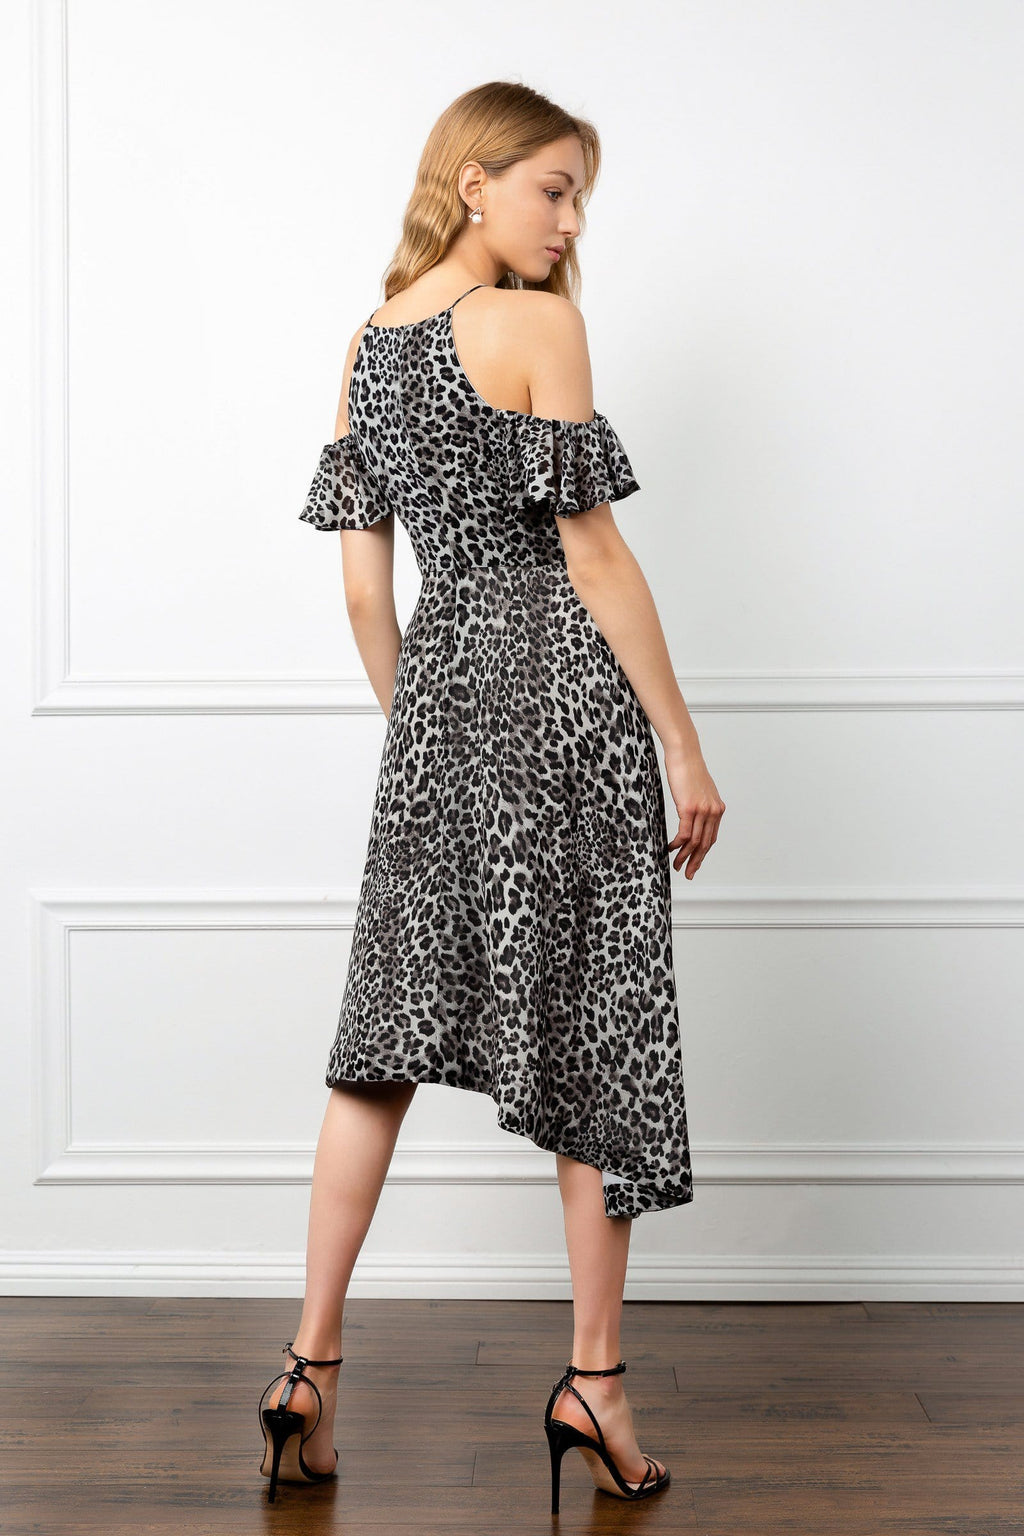 j.ing snow leopard dress asymmetrical hemline womens sheer dresses